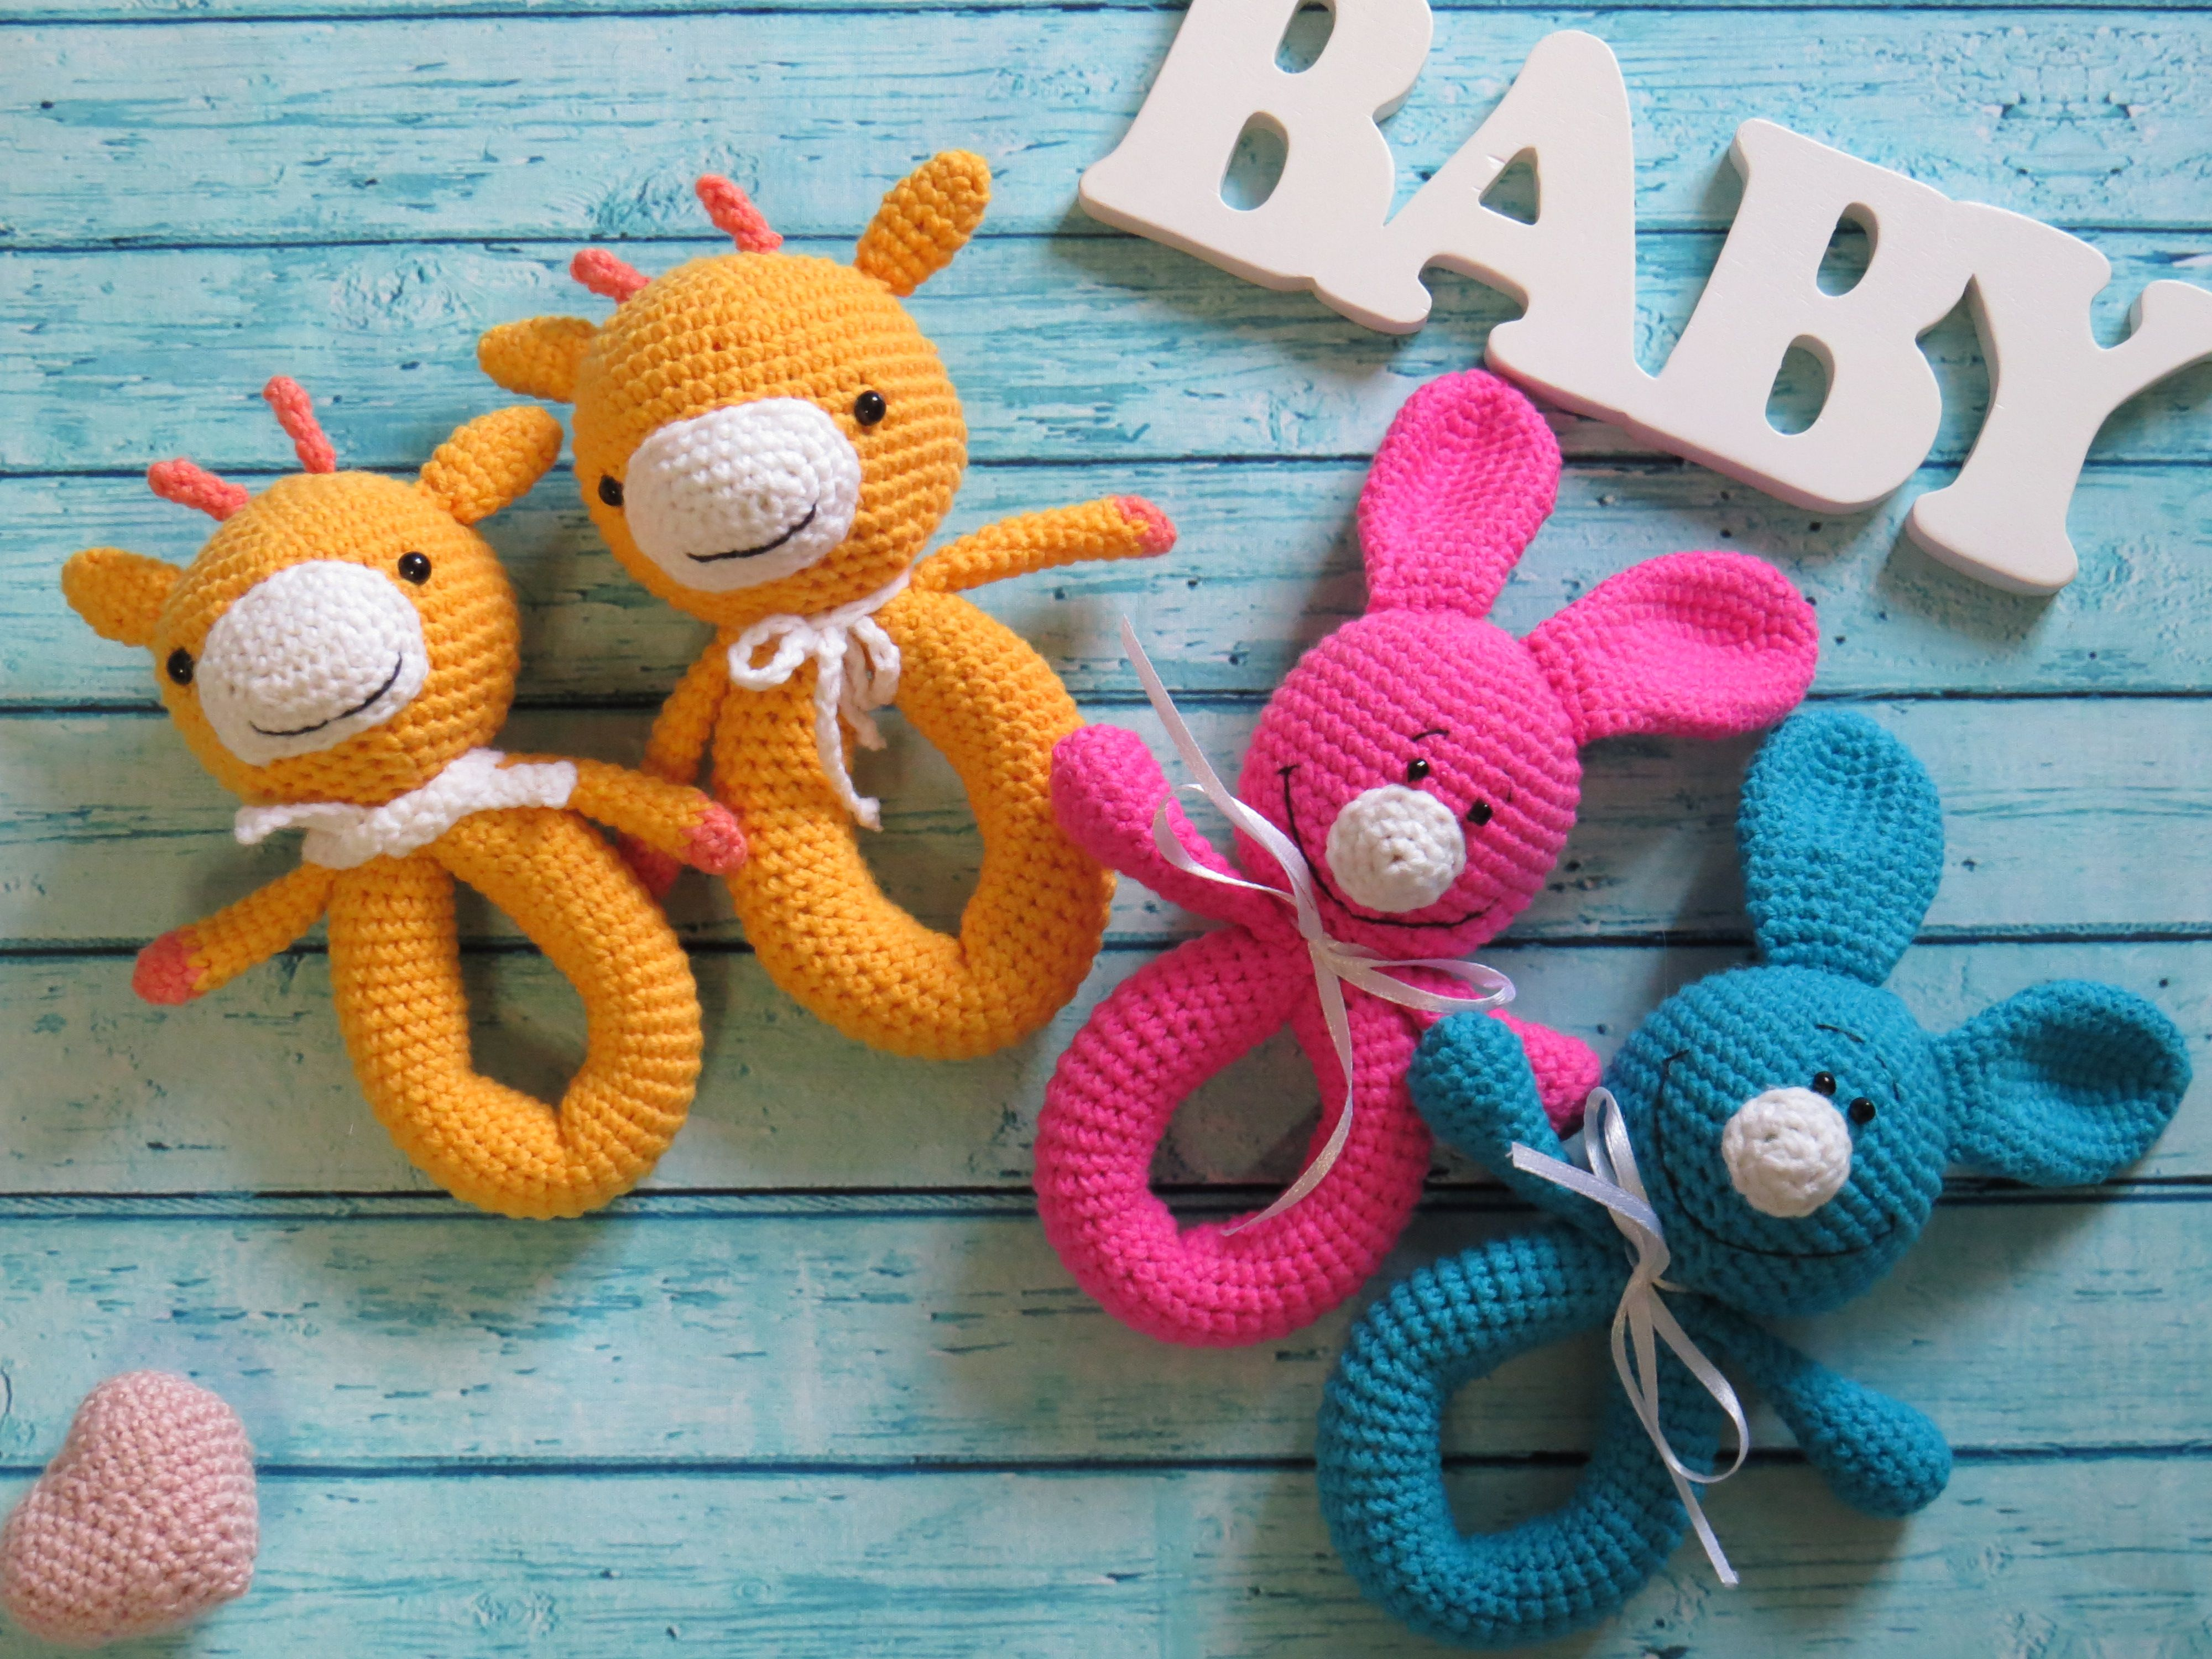 Images of baby toys  Rattle Newborn toy Crochet baby toy First toy Baby toy Bed toy